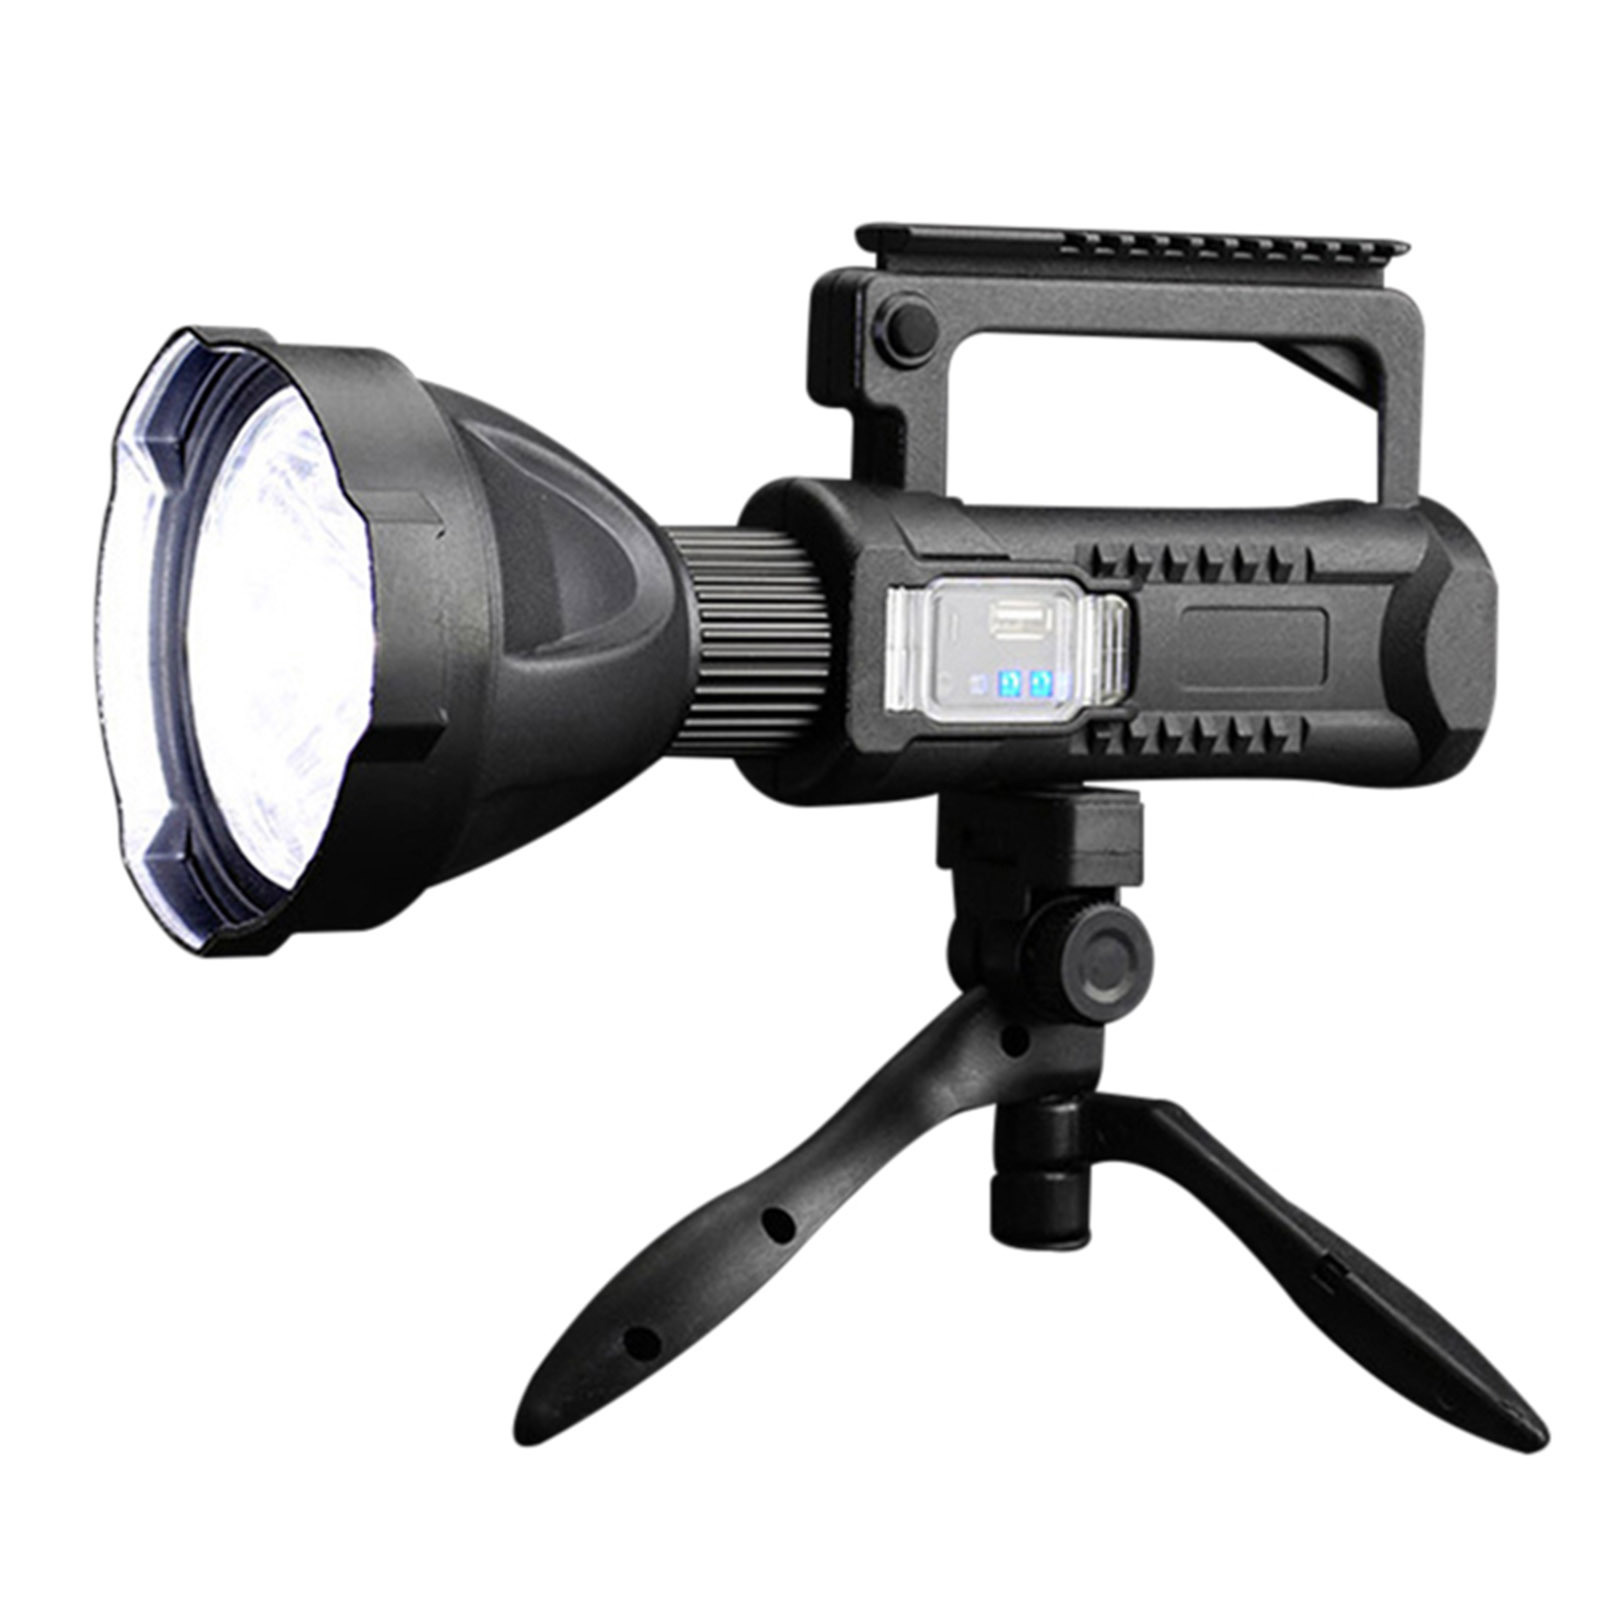 Super Bright LED Portable Floodlights Flashlight Searchlight with P70.2 Bulb Bead Mountable Bracket Suitable for Expedition